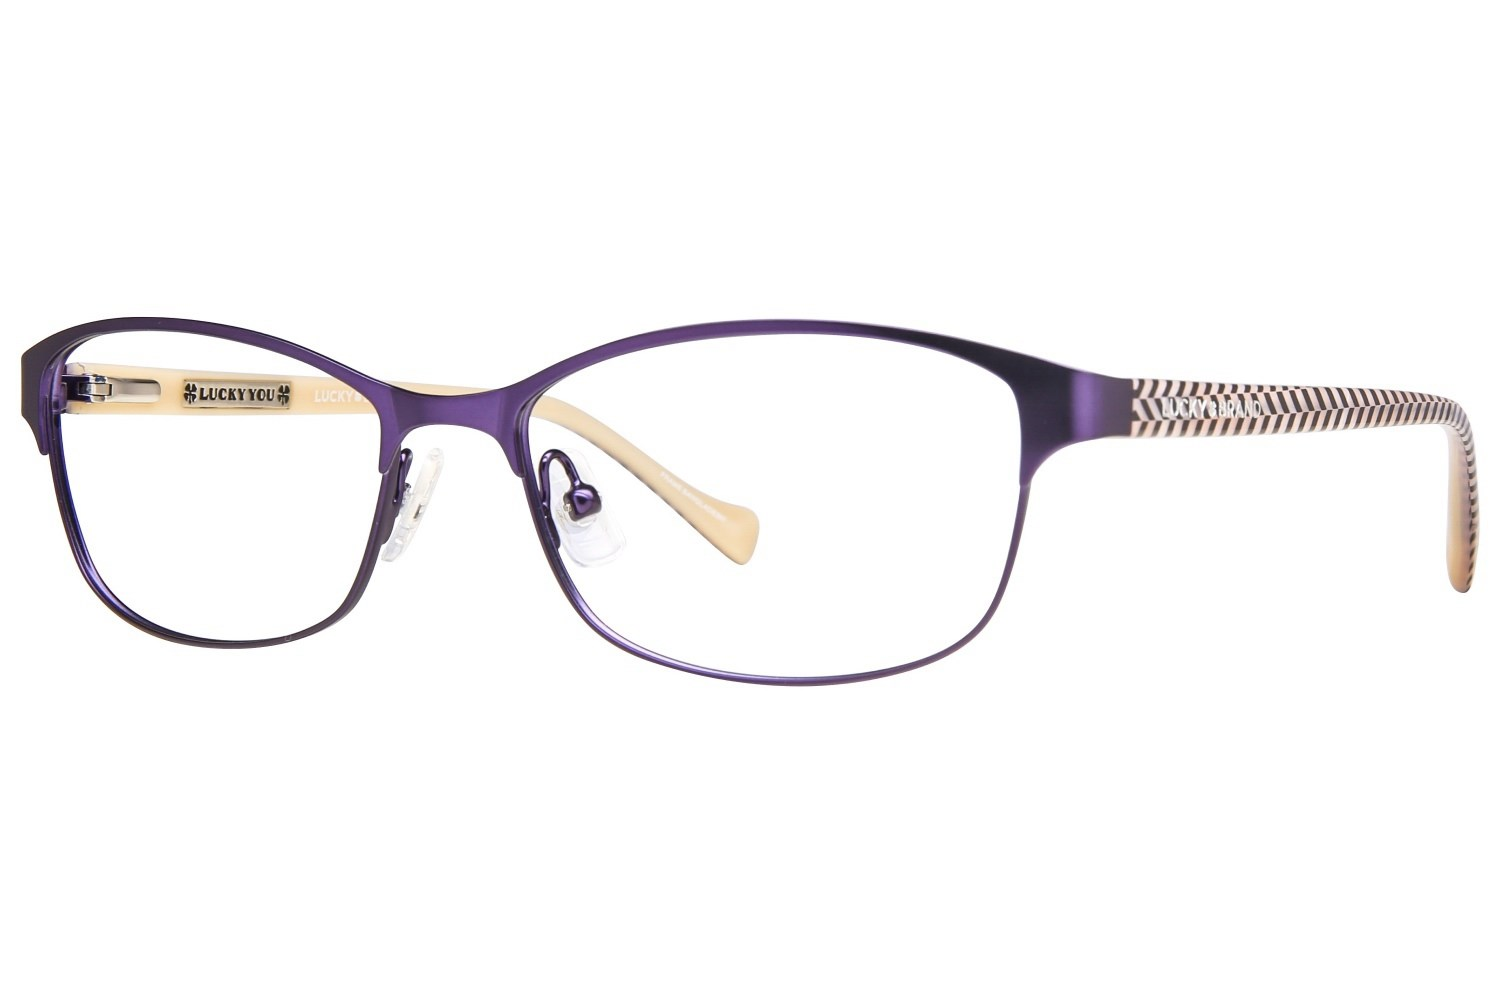 lucky-d102-prescription-eyeglasses